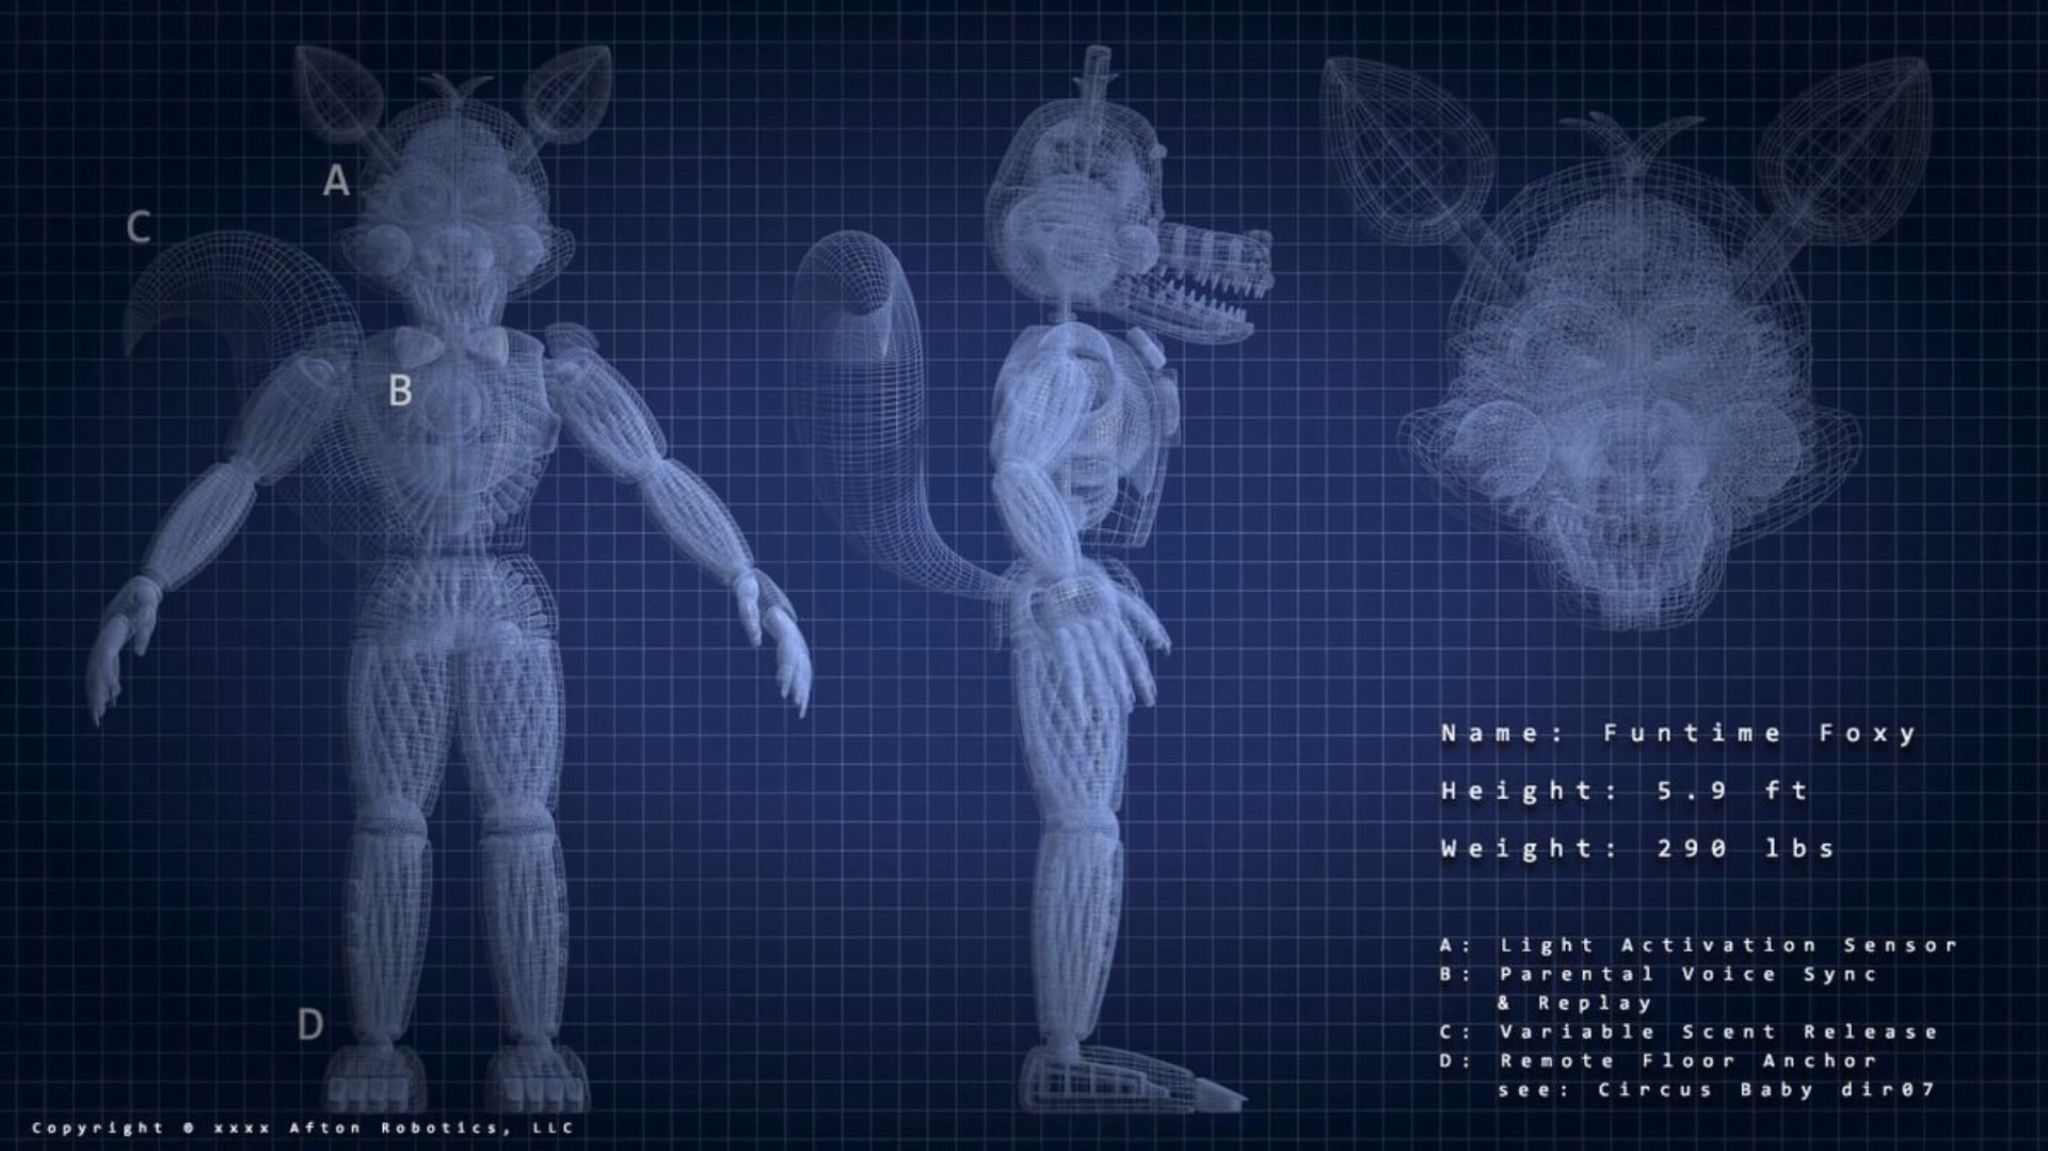 Funtime foxy blueprints five nights at freddys pinterest fnaf funtime foxy blueprints malvernweather Choice Image